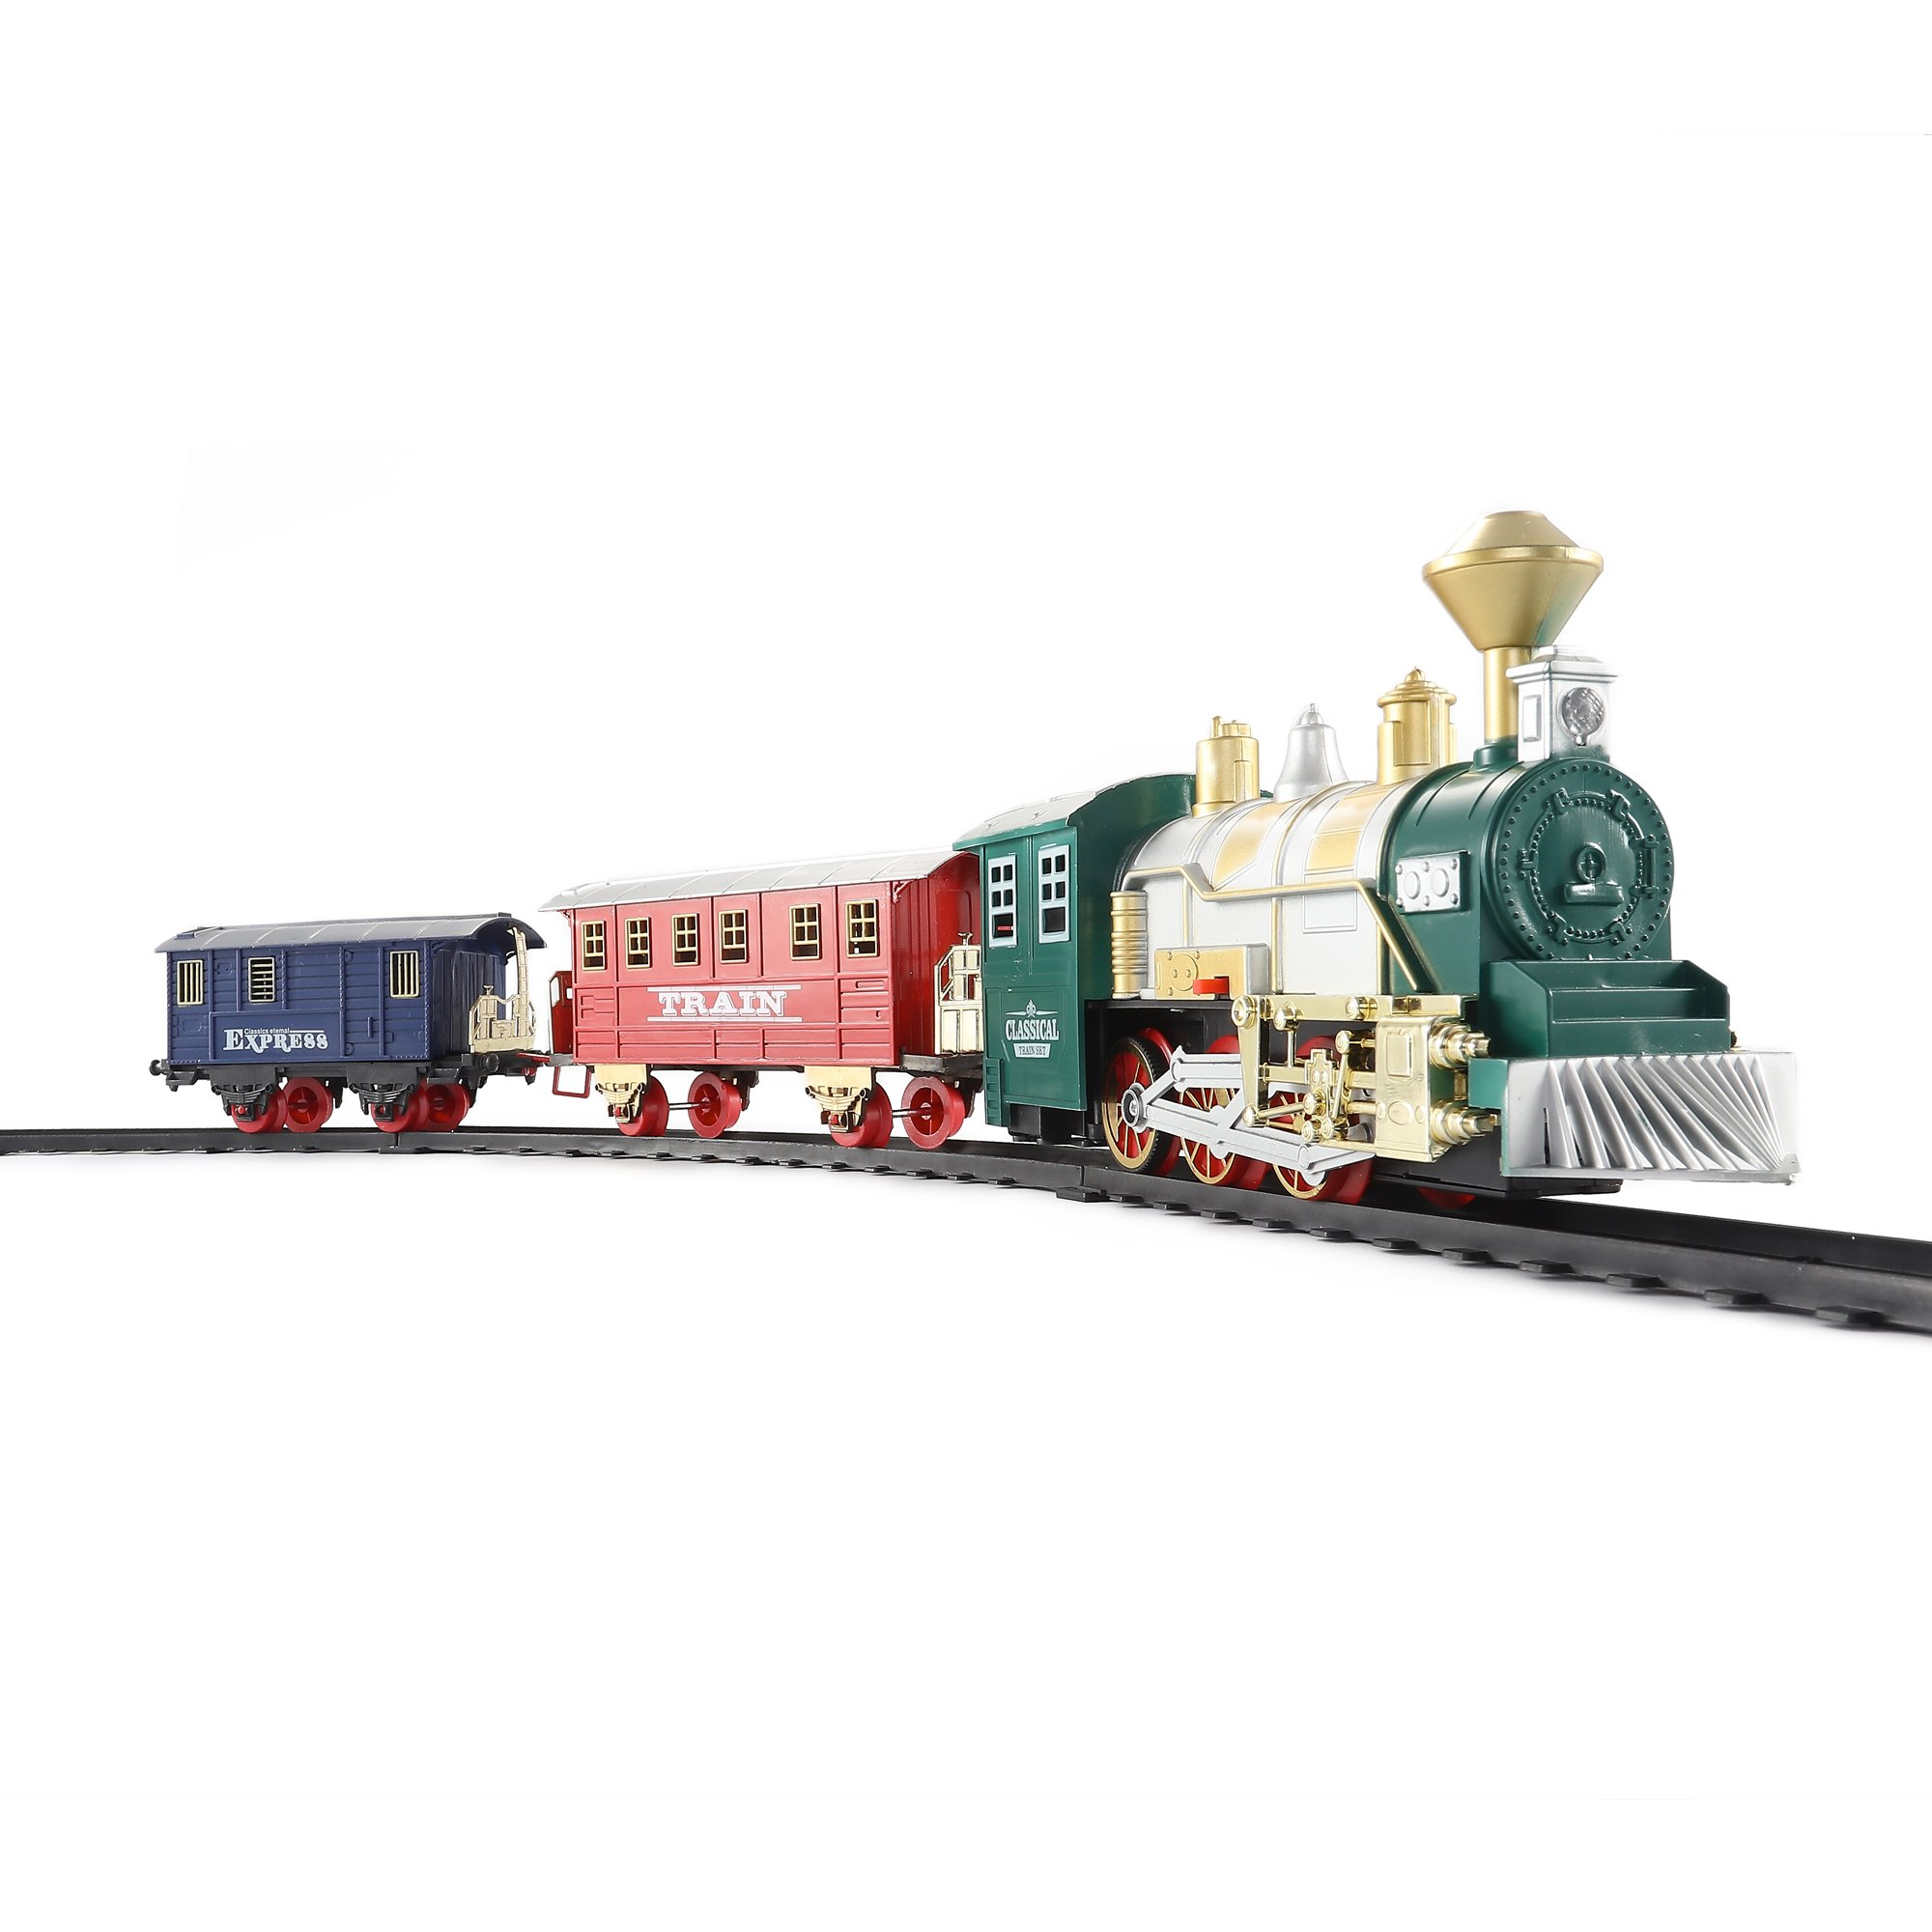 train sets for little boys preschool t ideas play vehicles for